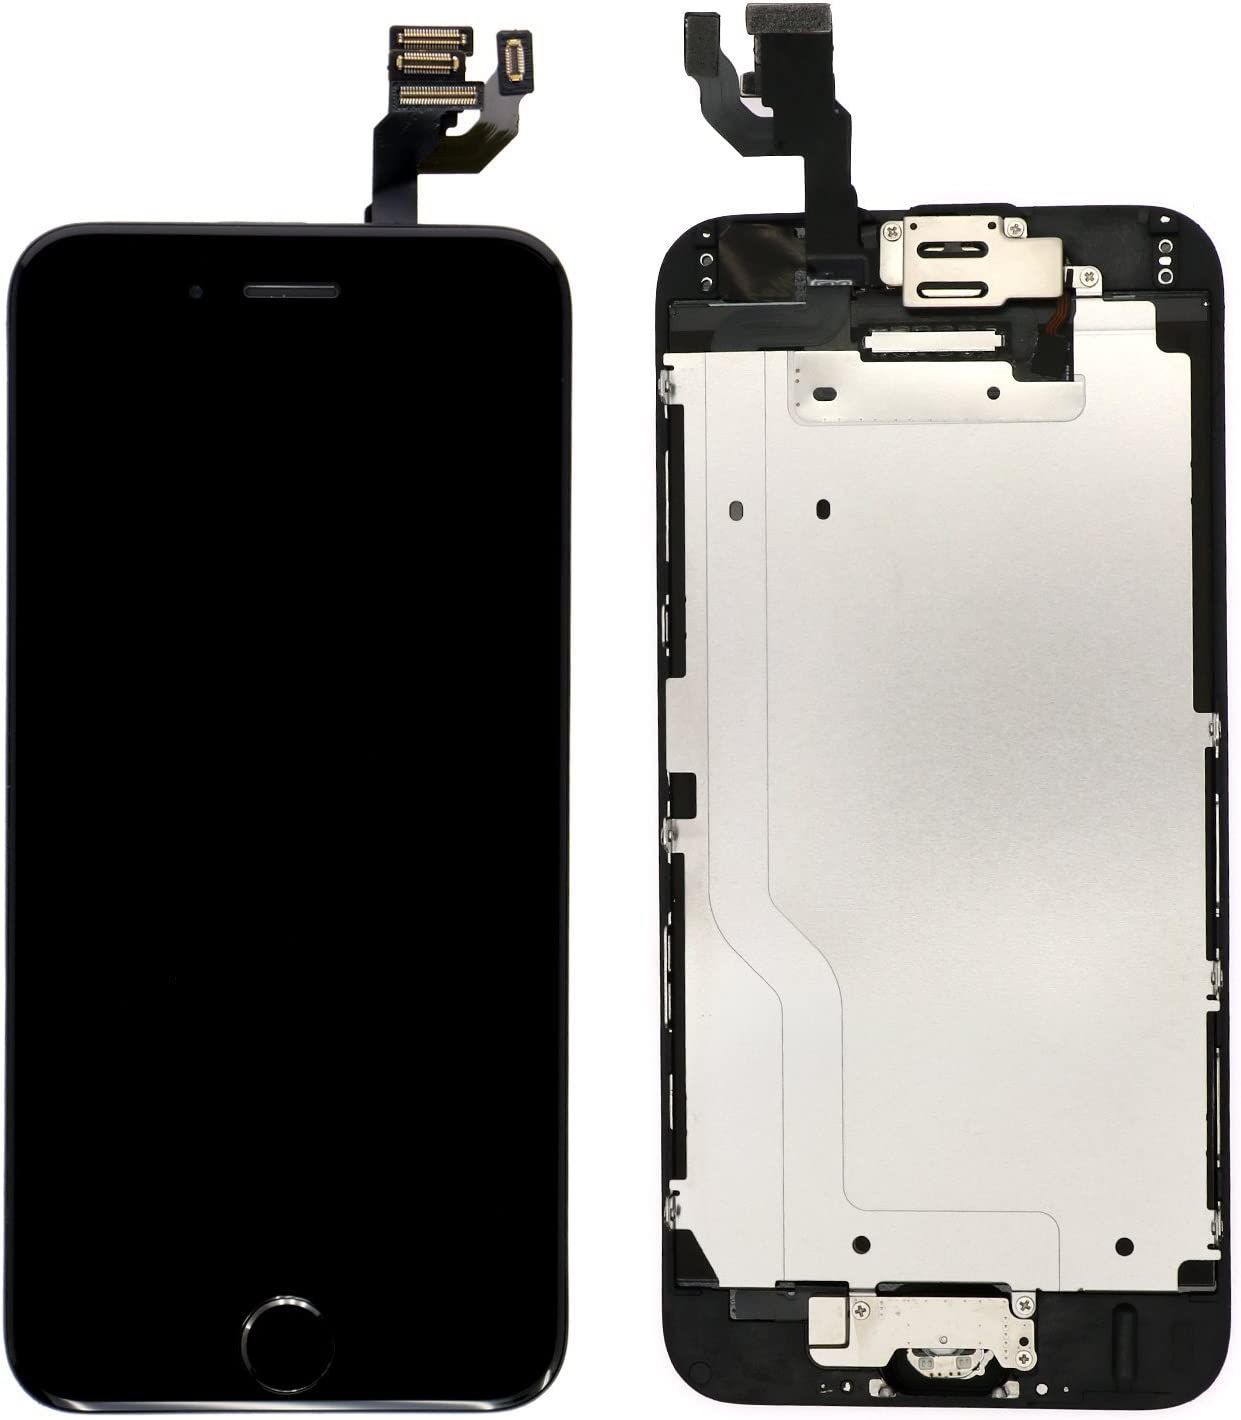 Nroech LCD Screen Replacement for iPhone 6 Black Full Assembly with Front Camera Ear Speaker and Light//Proximity Sensor Repair Tools and Free Screen Protector Included. with Home Button